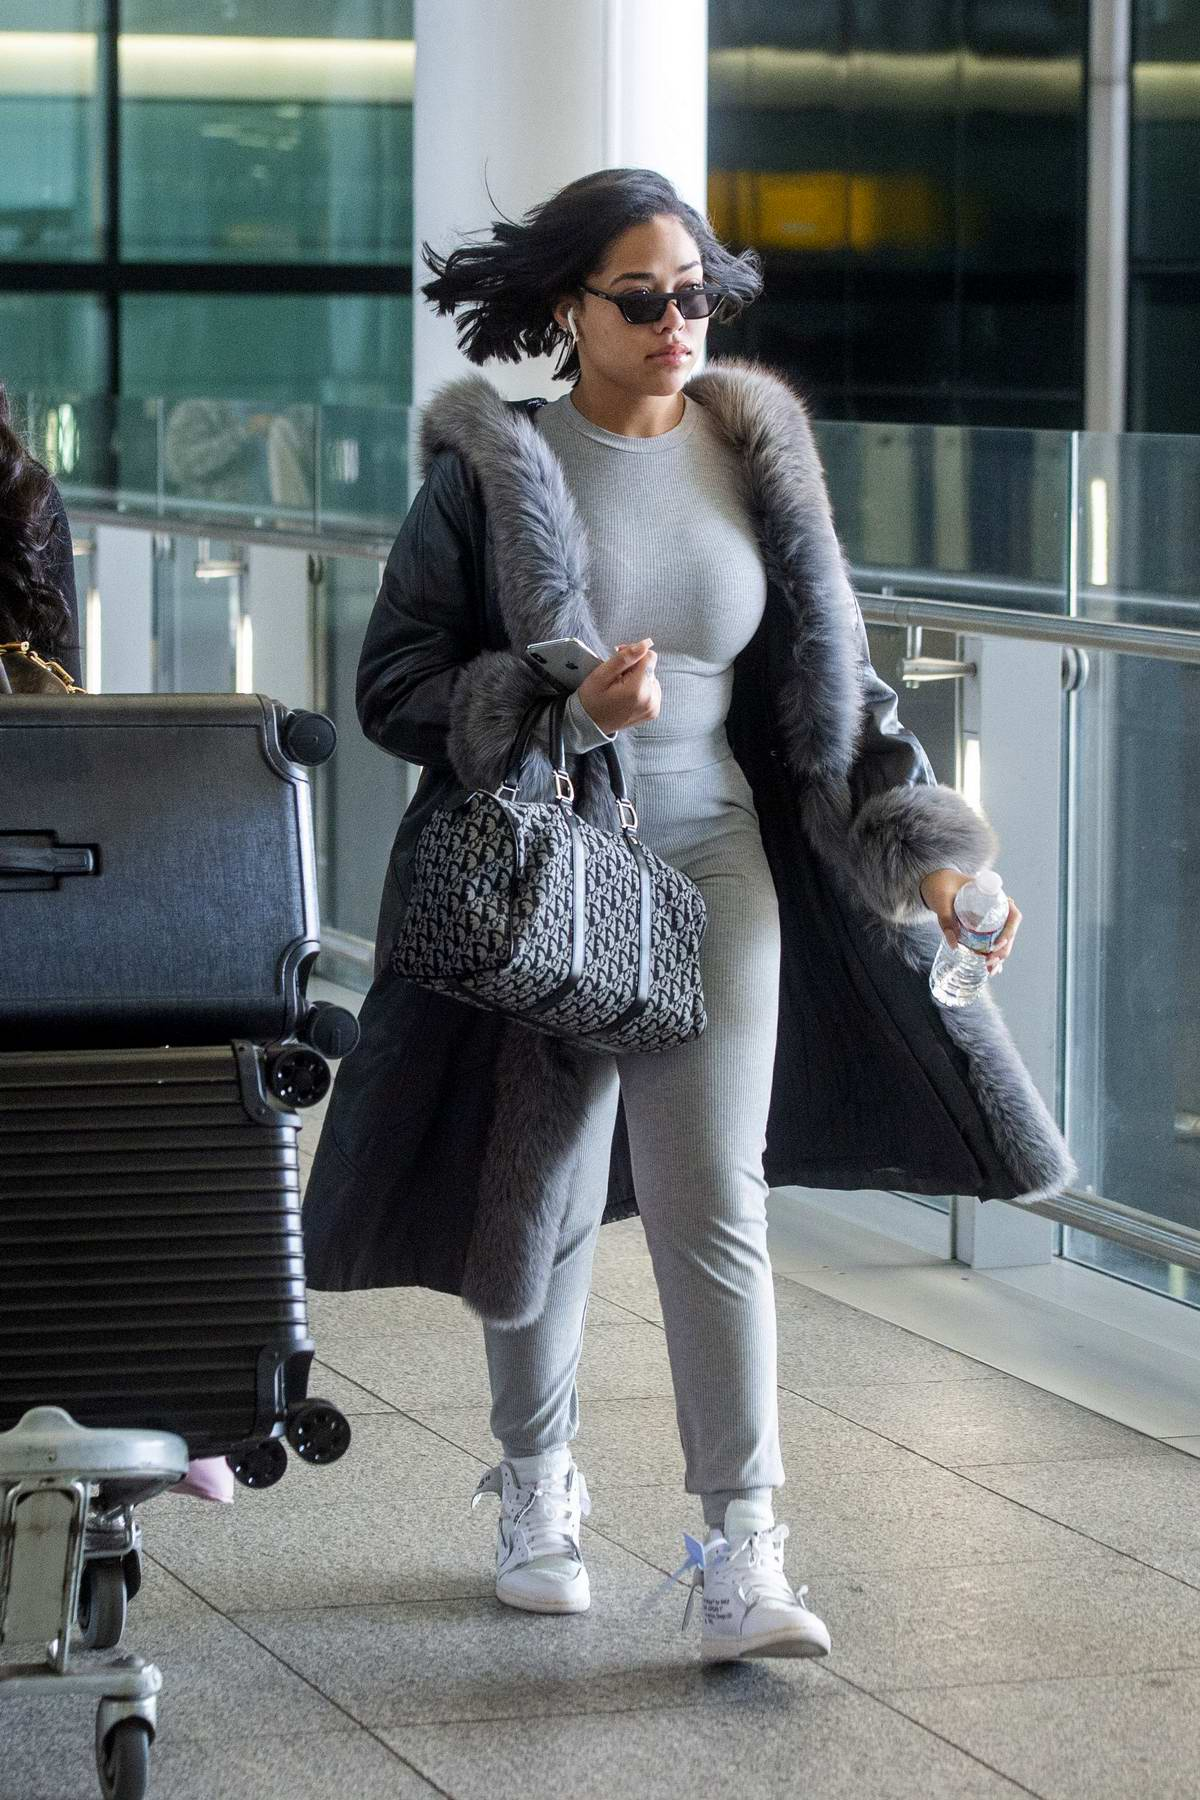 Jordyn Woods dressed in fur trimmed coat and grey sweatsuit as she arrives at Heathrow Airport in London, UK